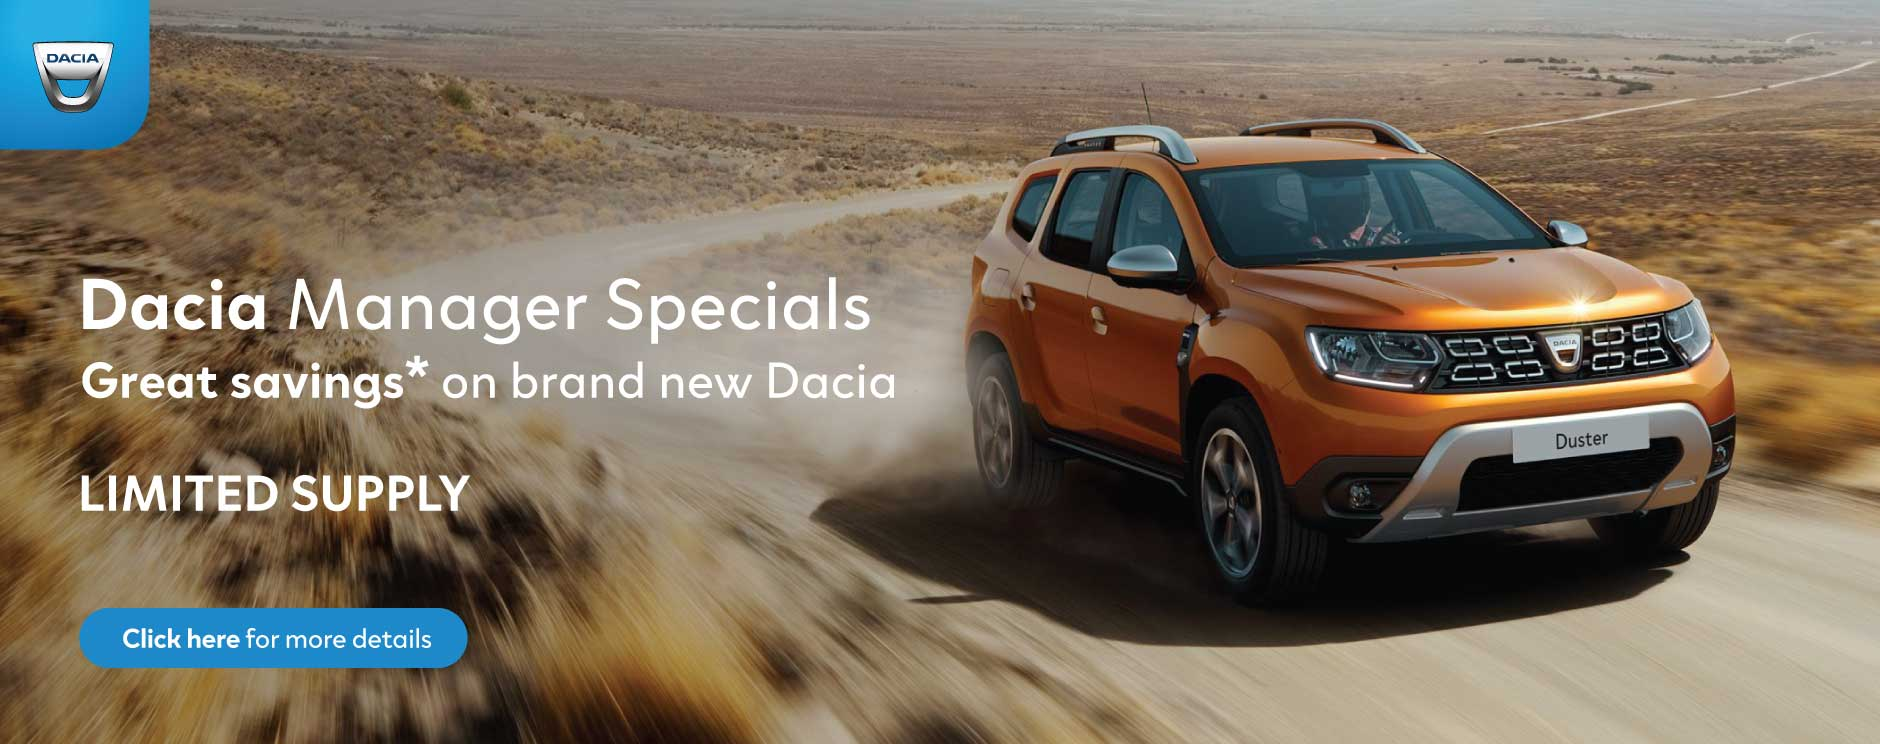 Dacia Manager Specials BB